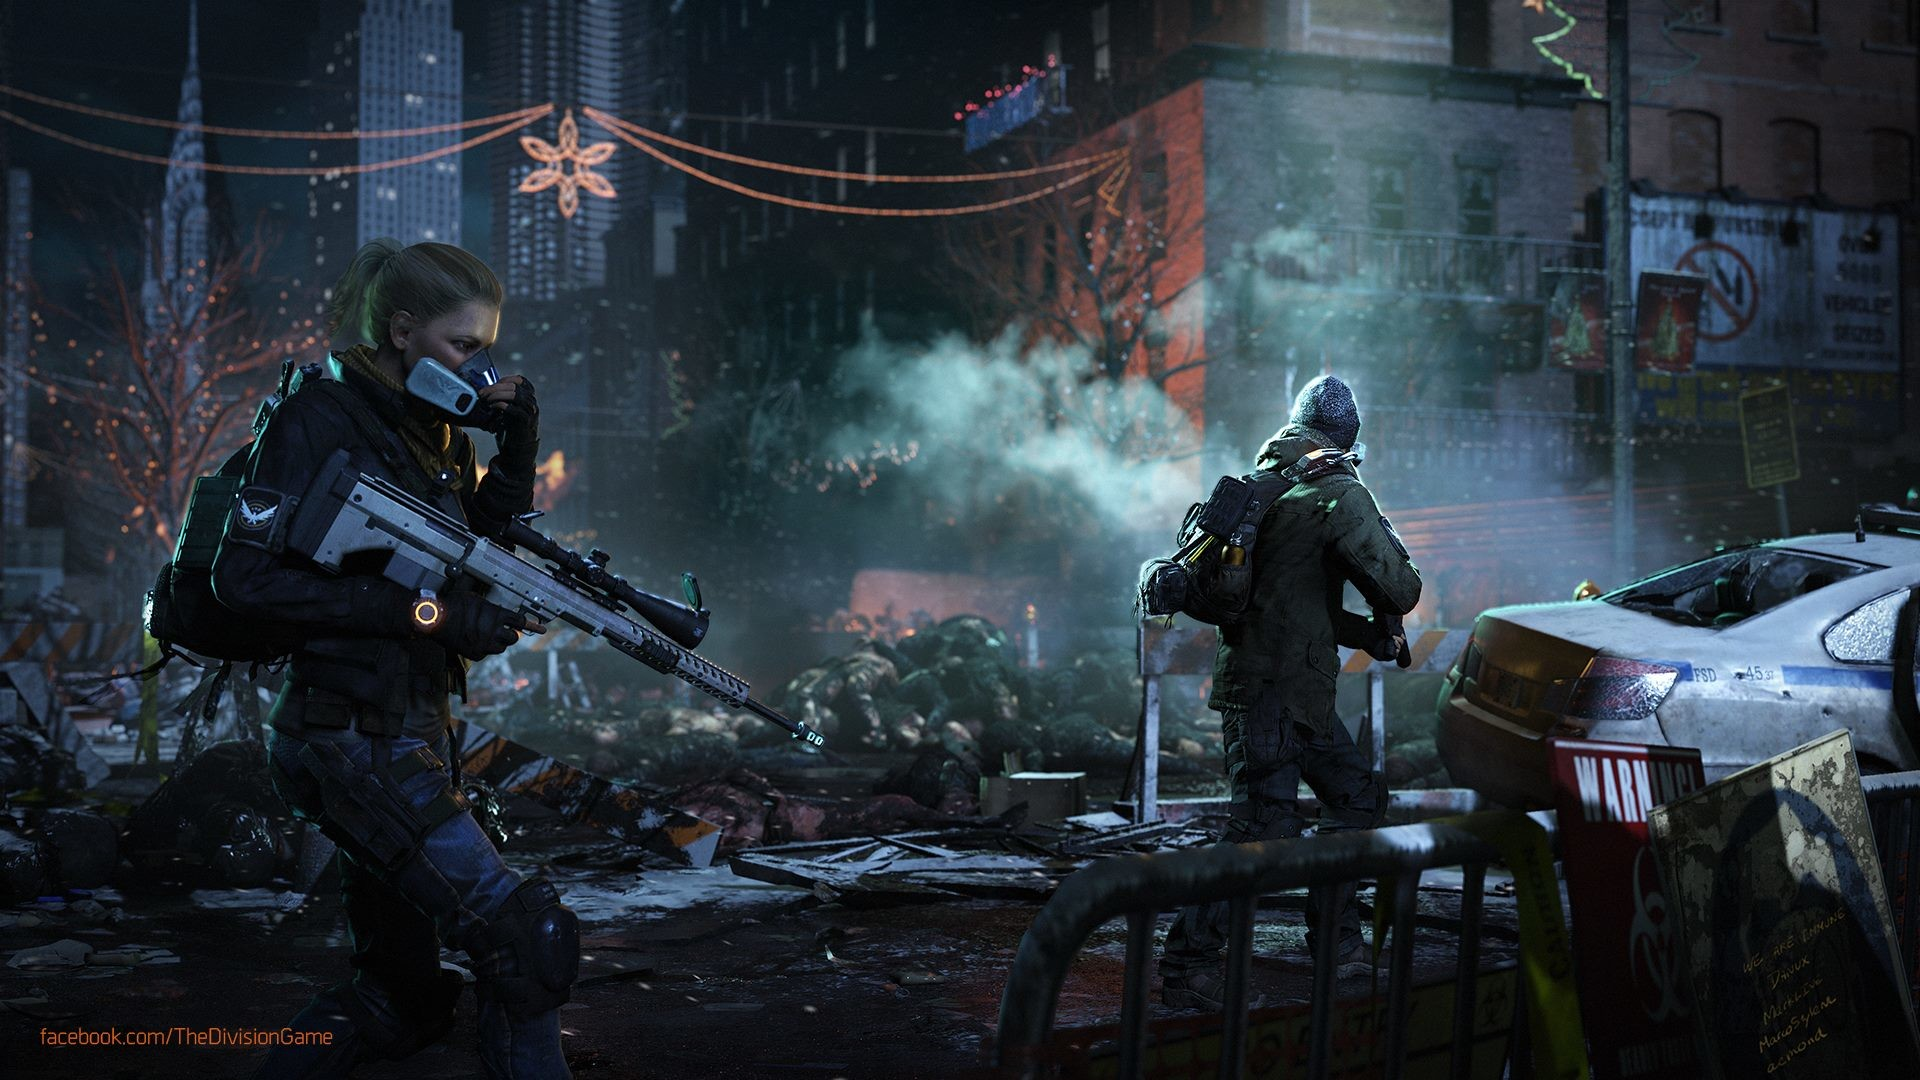 Tom Clancy s The Division The Division Wallpaper 1080p